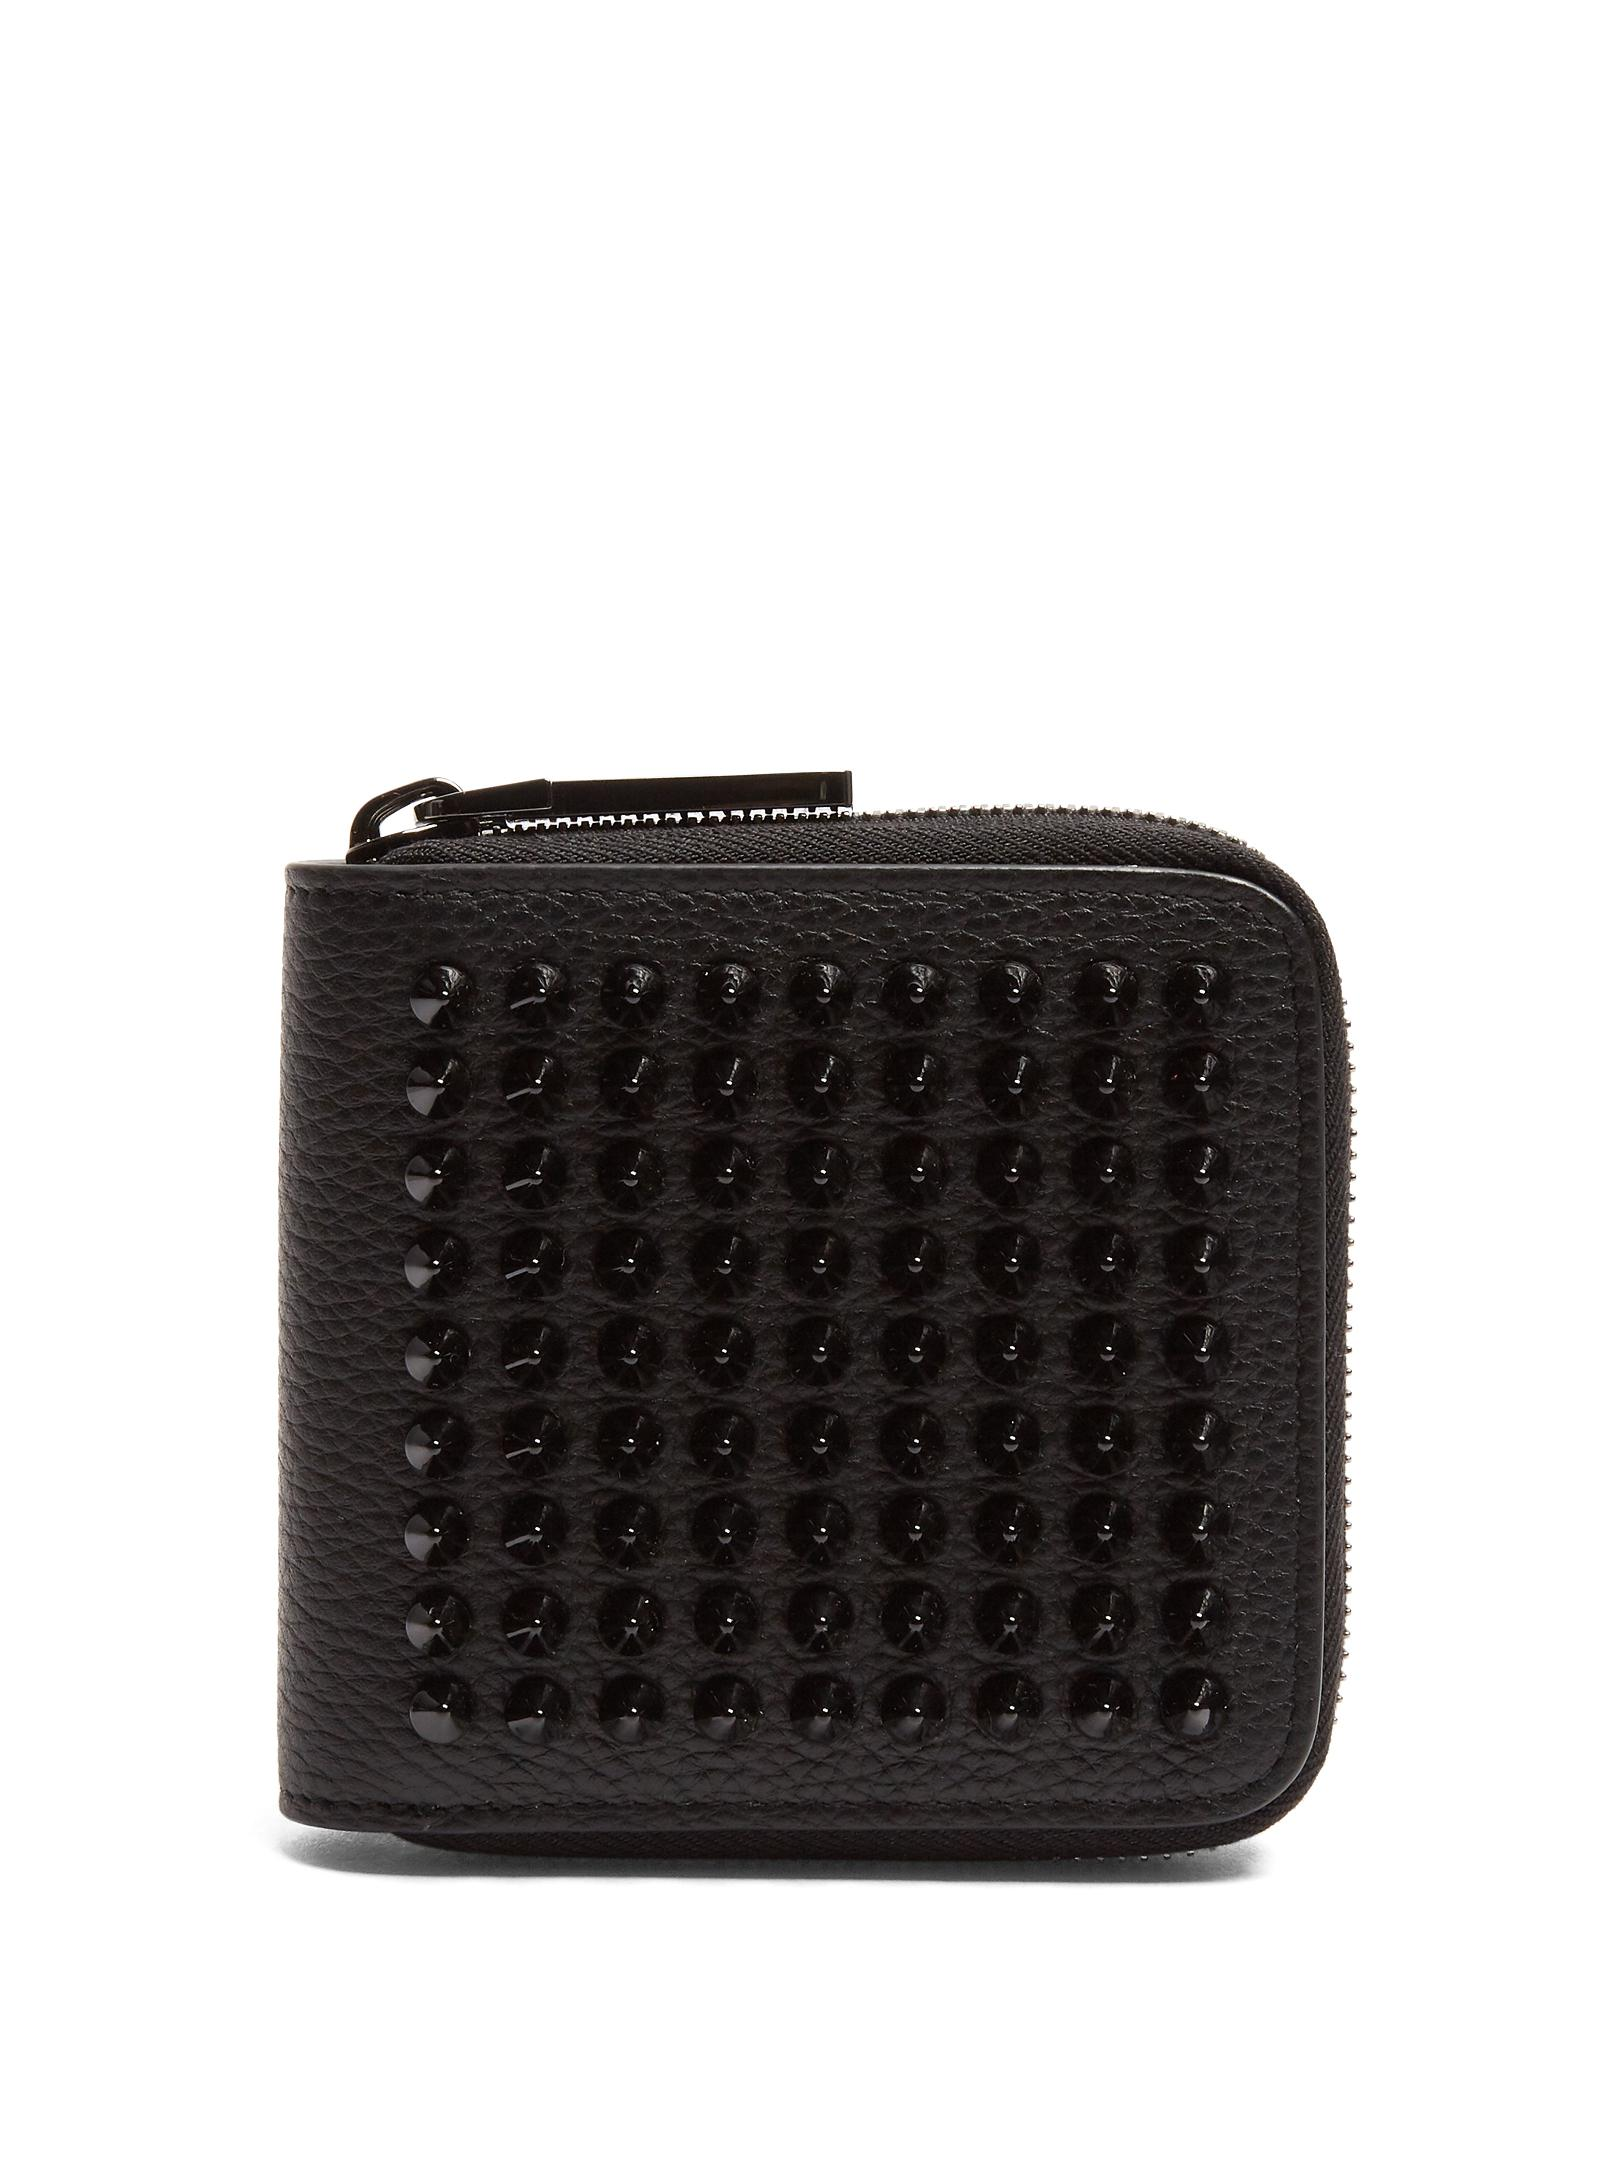 black Panettone spike embellished leather wallet Christian Louboutin